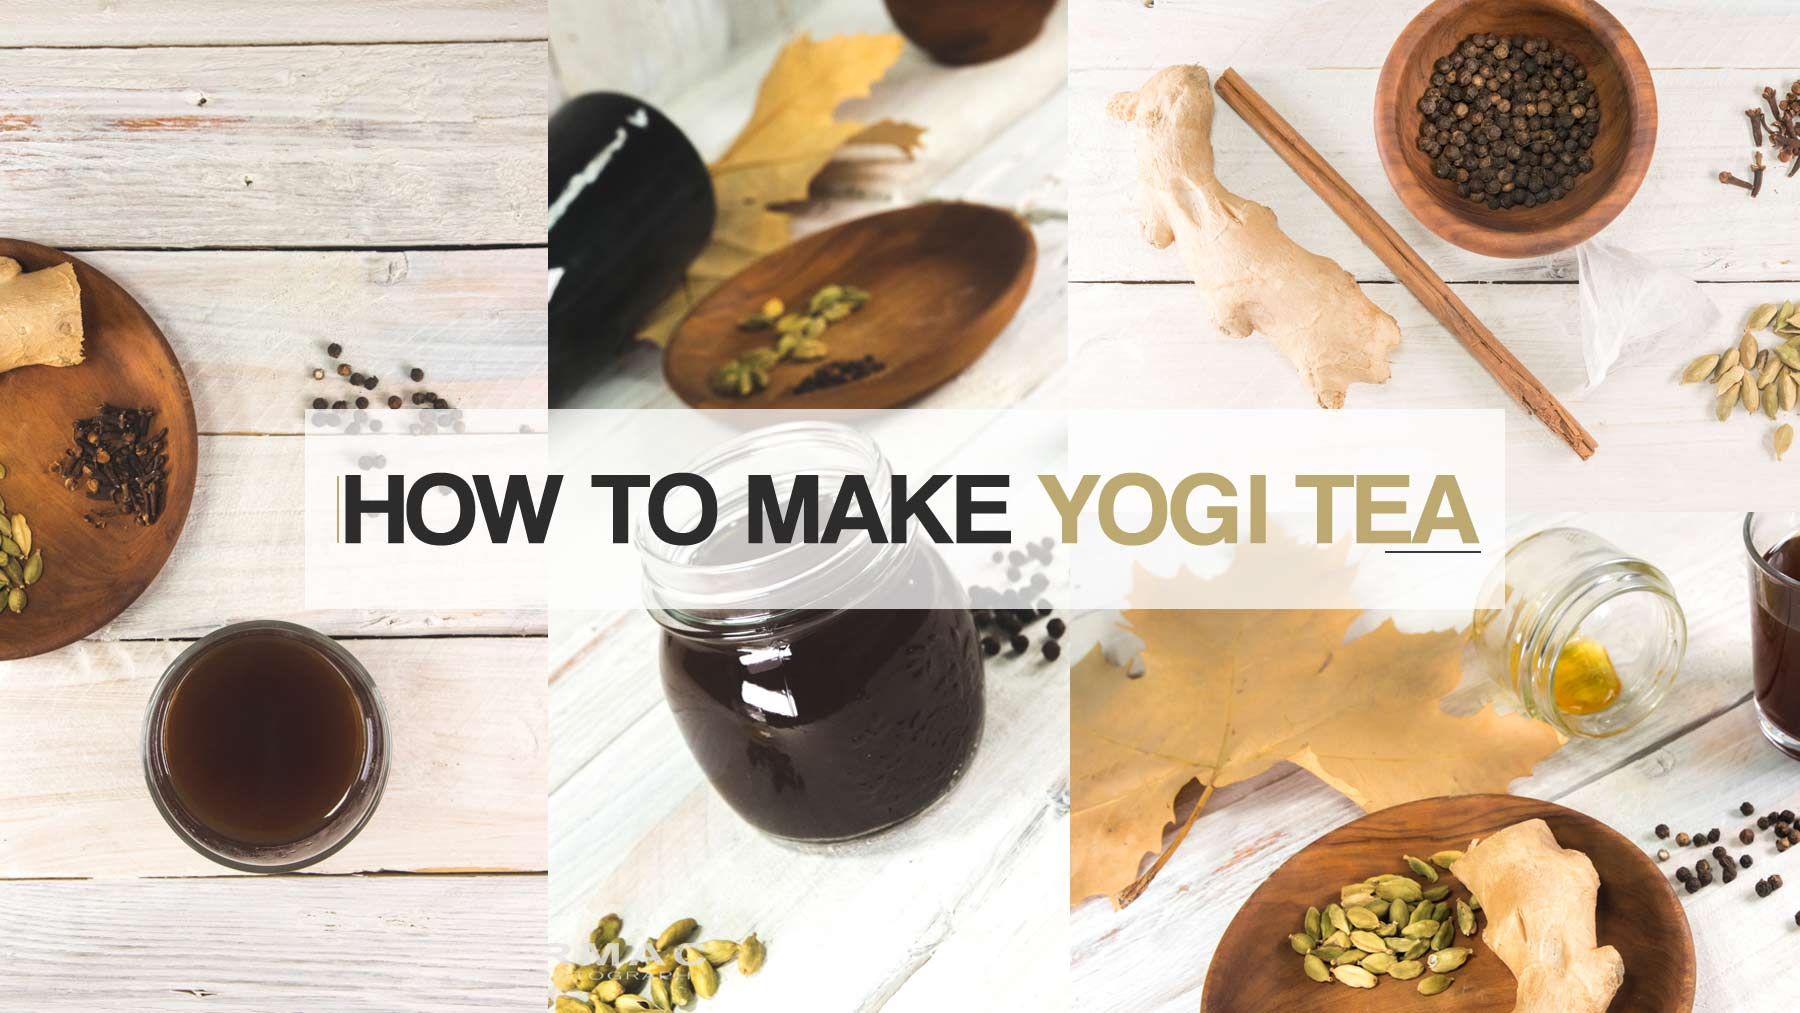 traditional yogi tea recipe